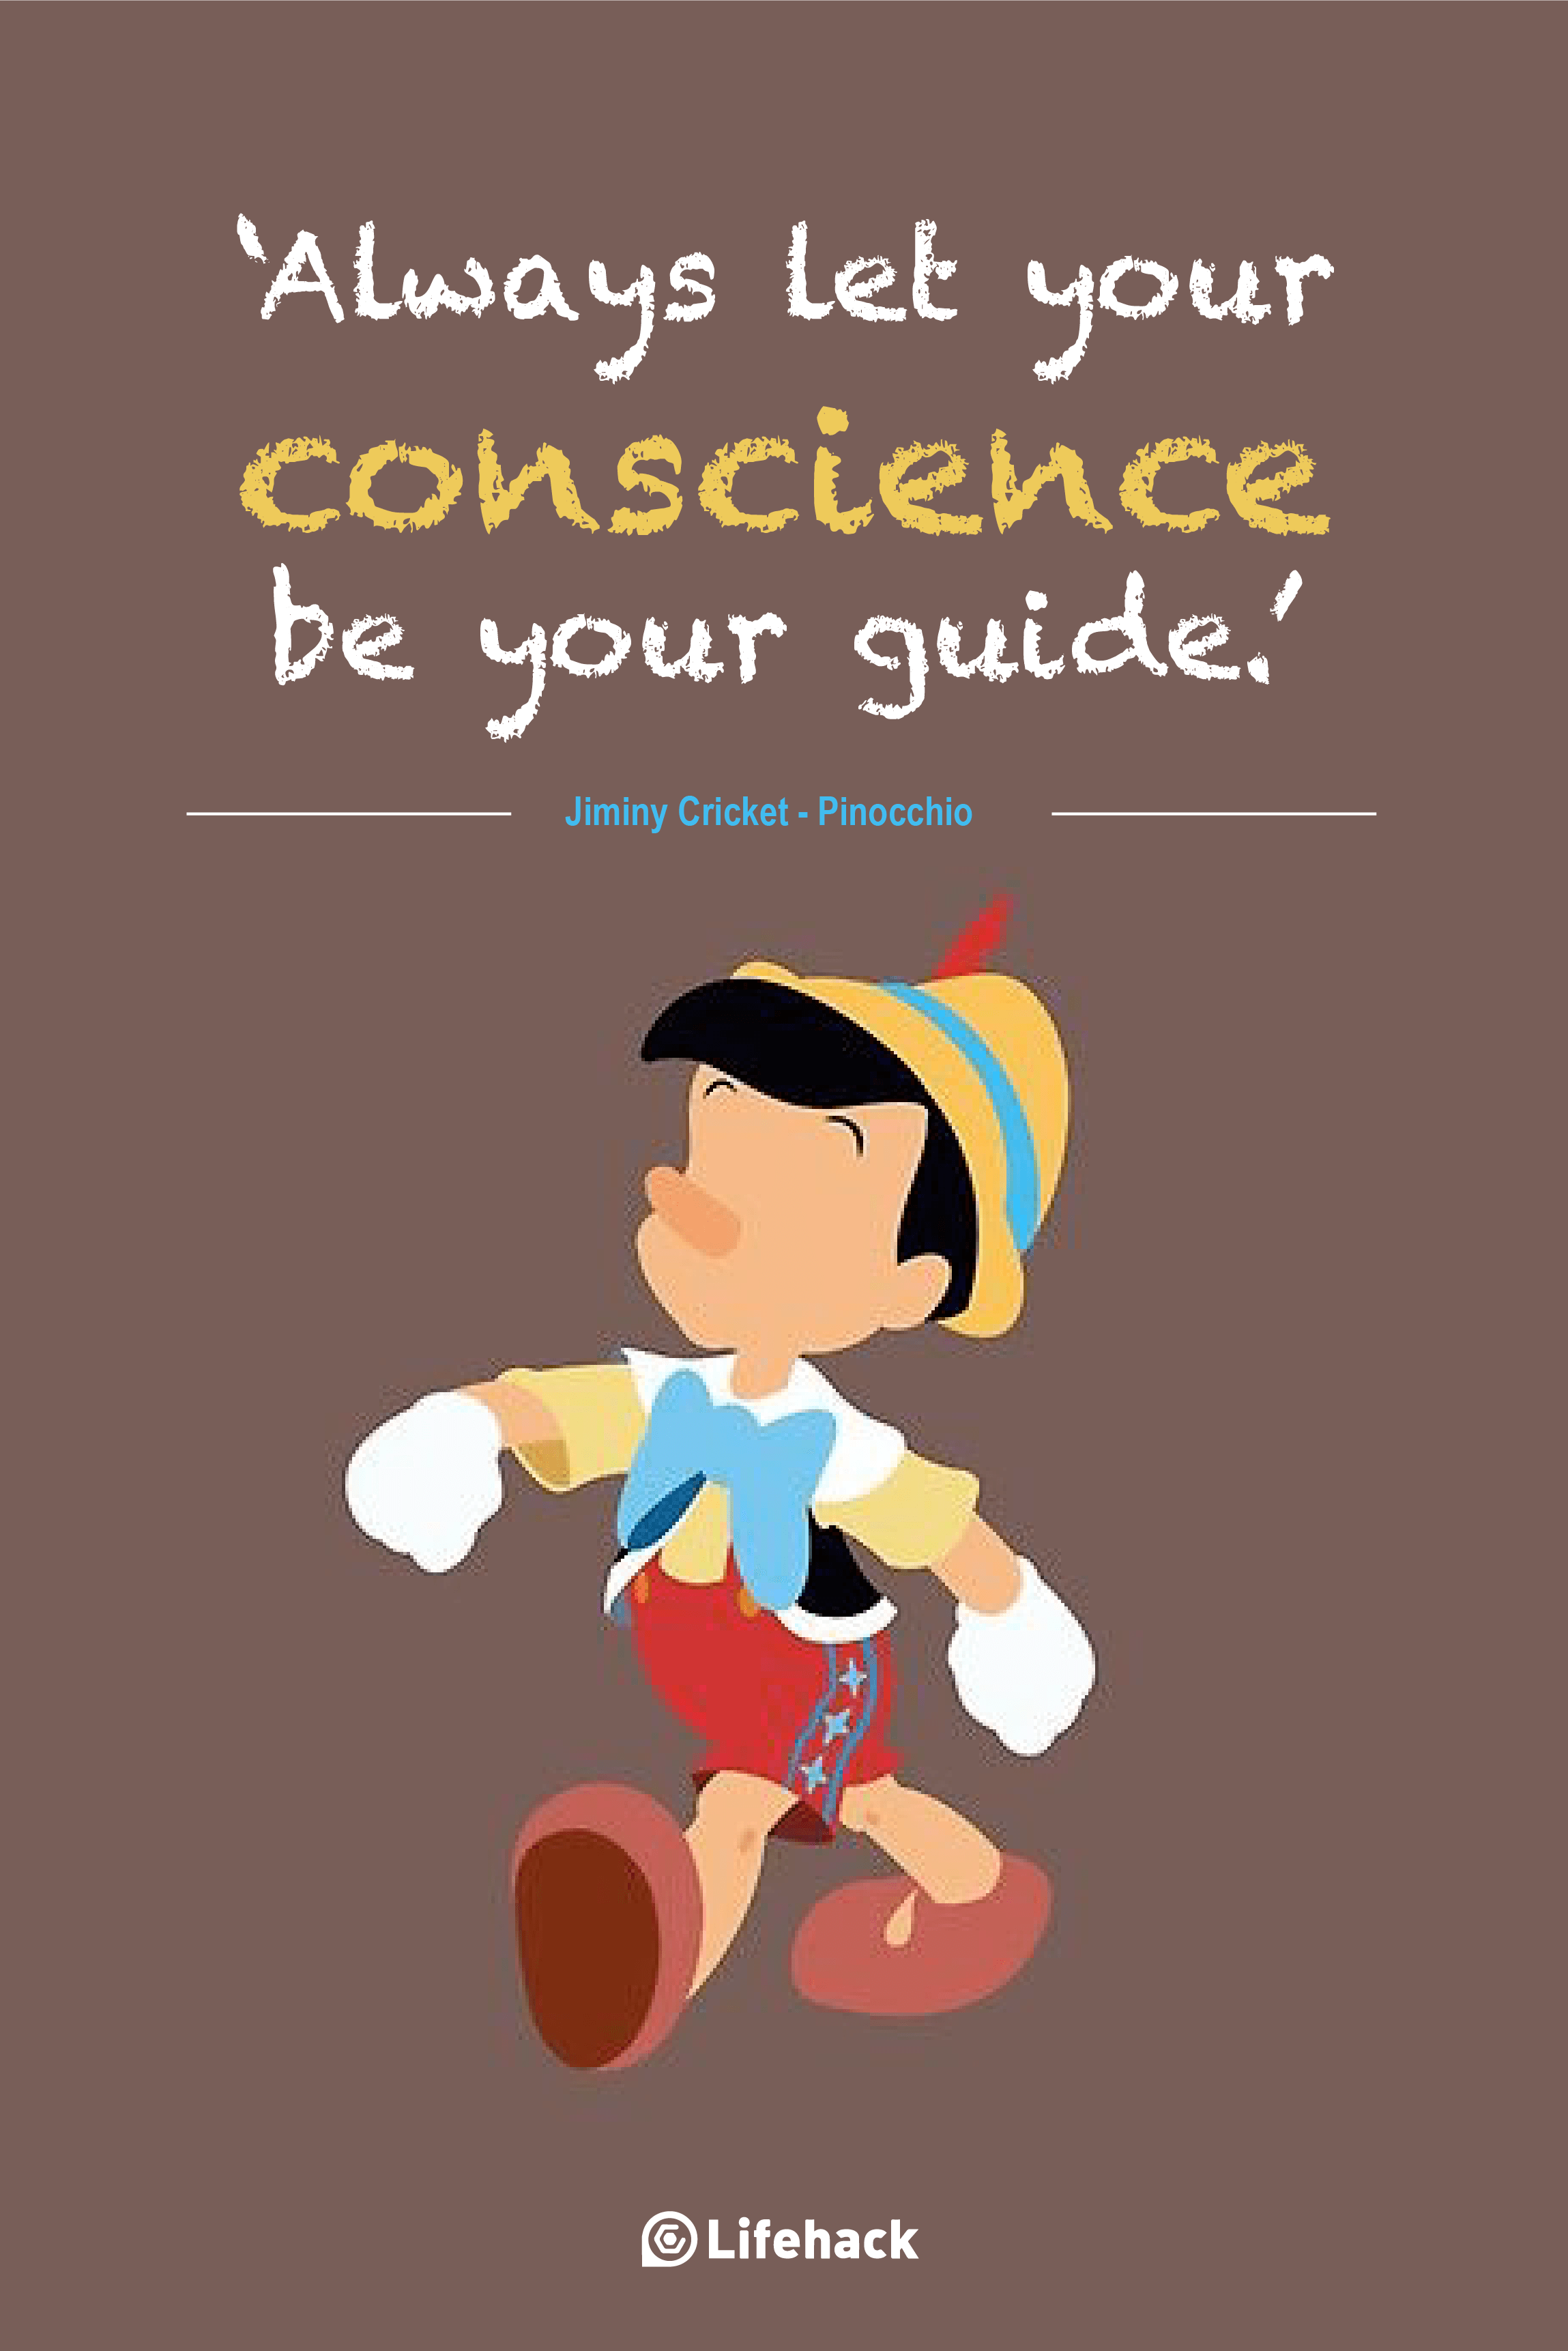 20 Charming Disney Quotes To Warm Your Heart Thoughts Disney